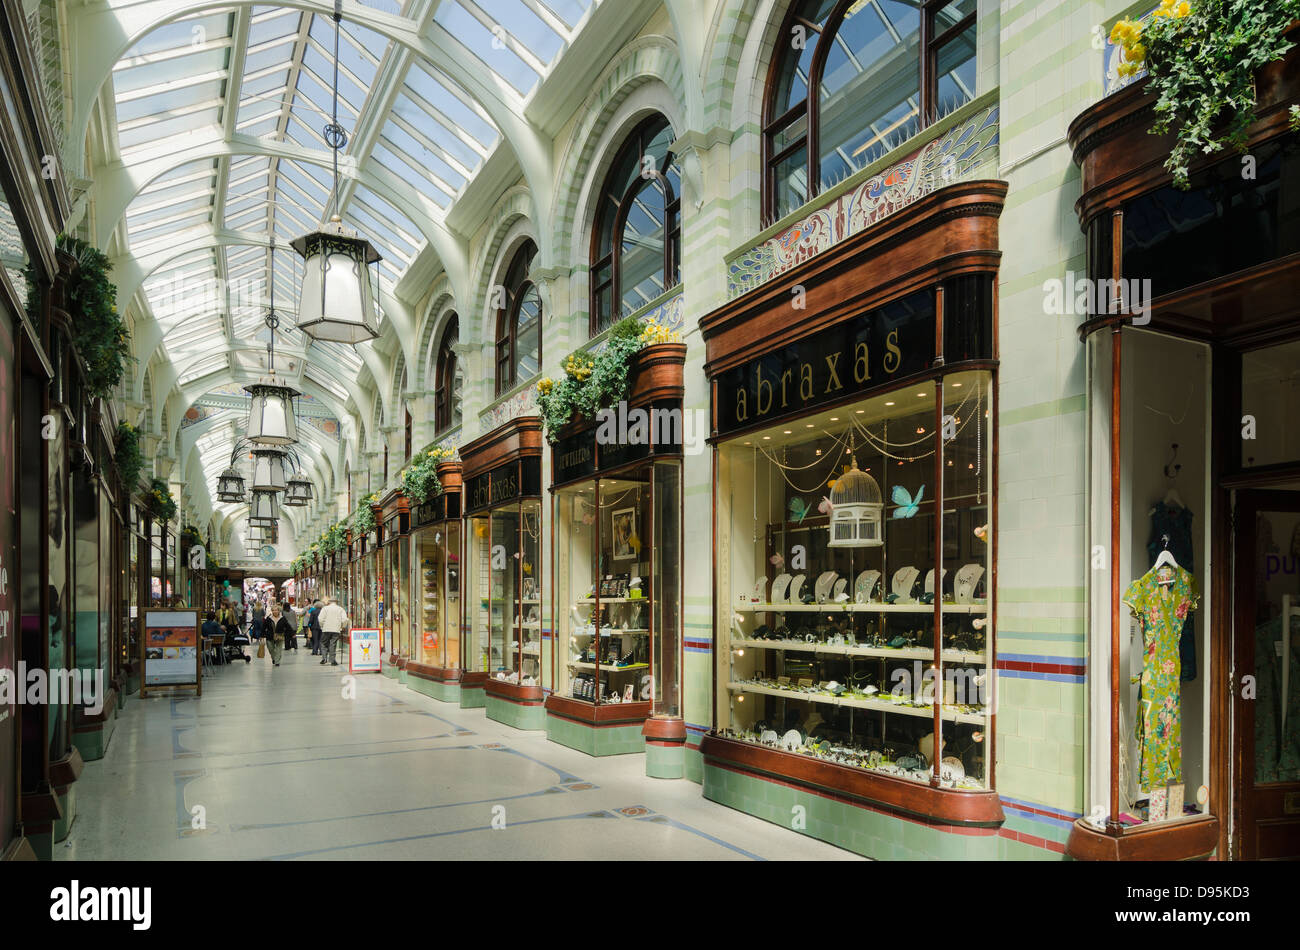 The Royal Arcade Norwich Norfolk UK Abraxas Jewelers - Stock Image